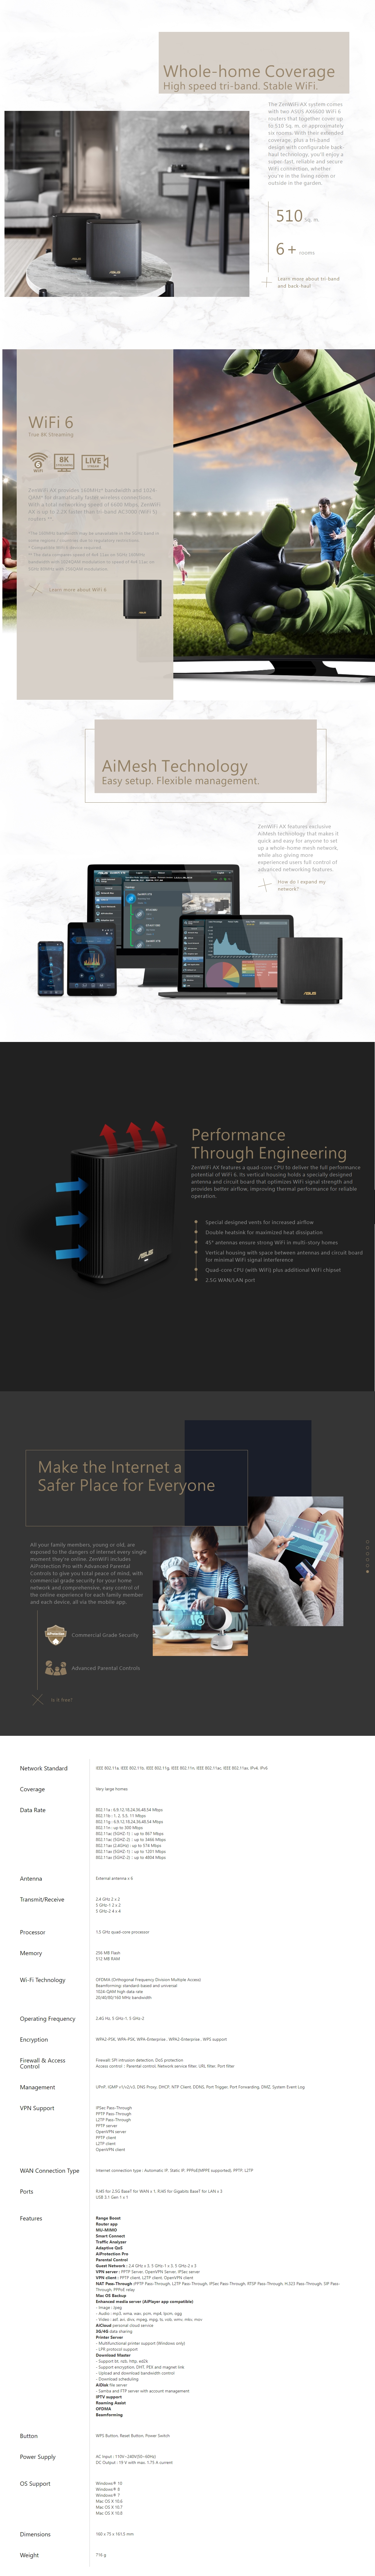 A large marketing image providing additional information about the product Asus ZenWiFi XT8 AX6600 Tri-Band Mesh Wireless System - Additional alt info not provided